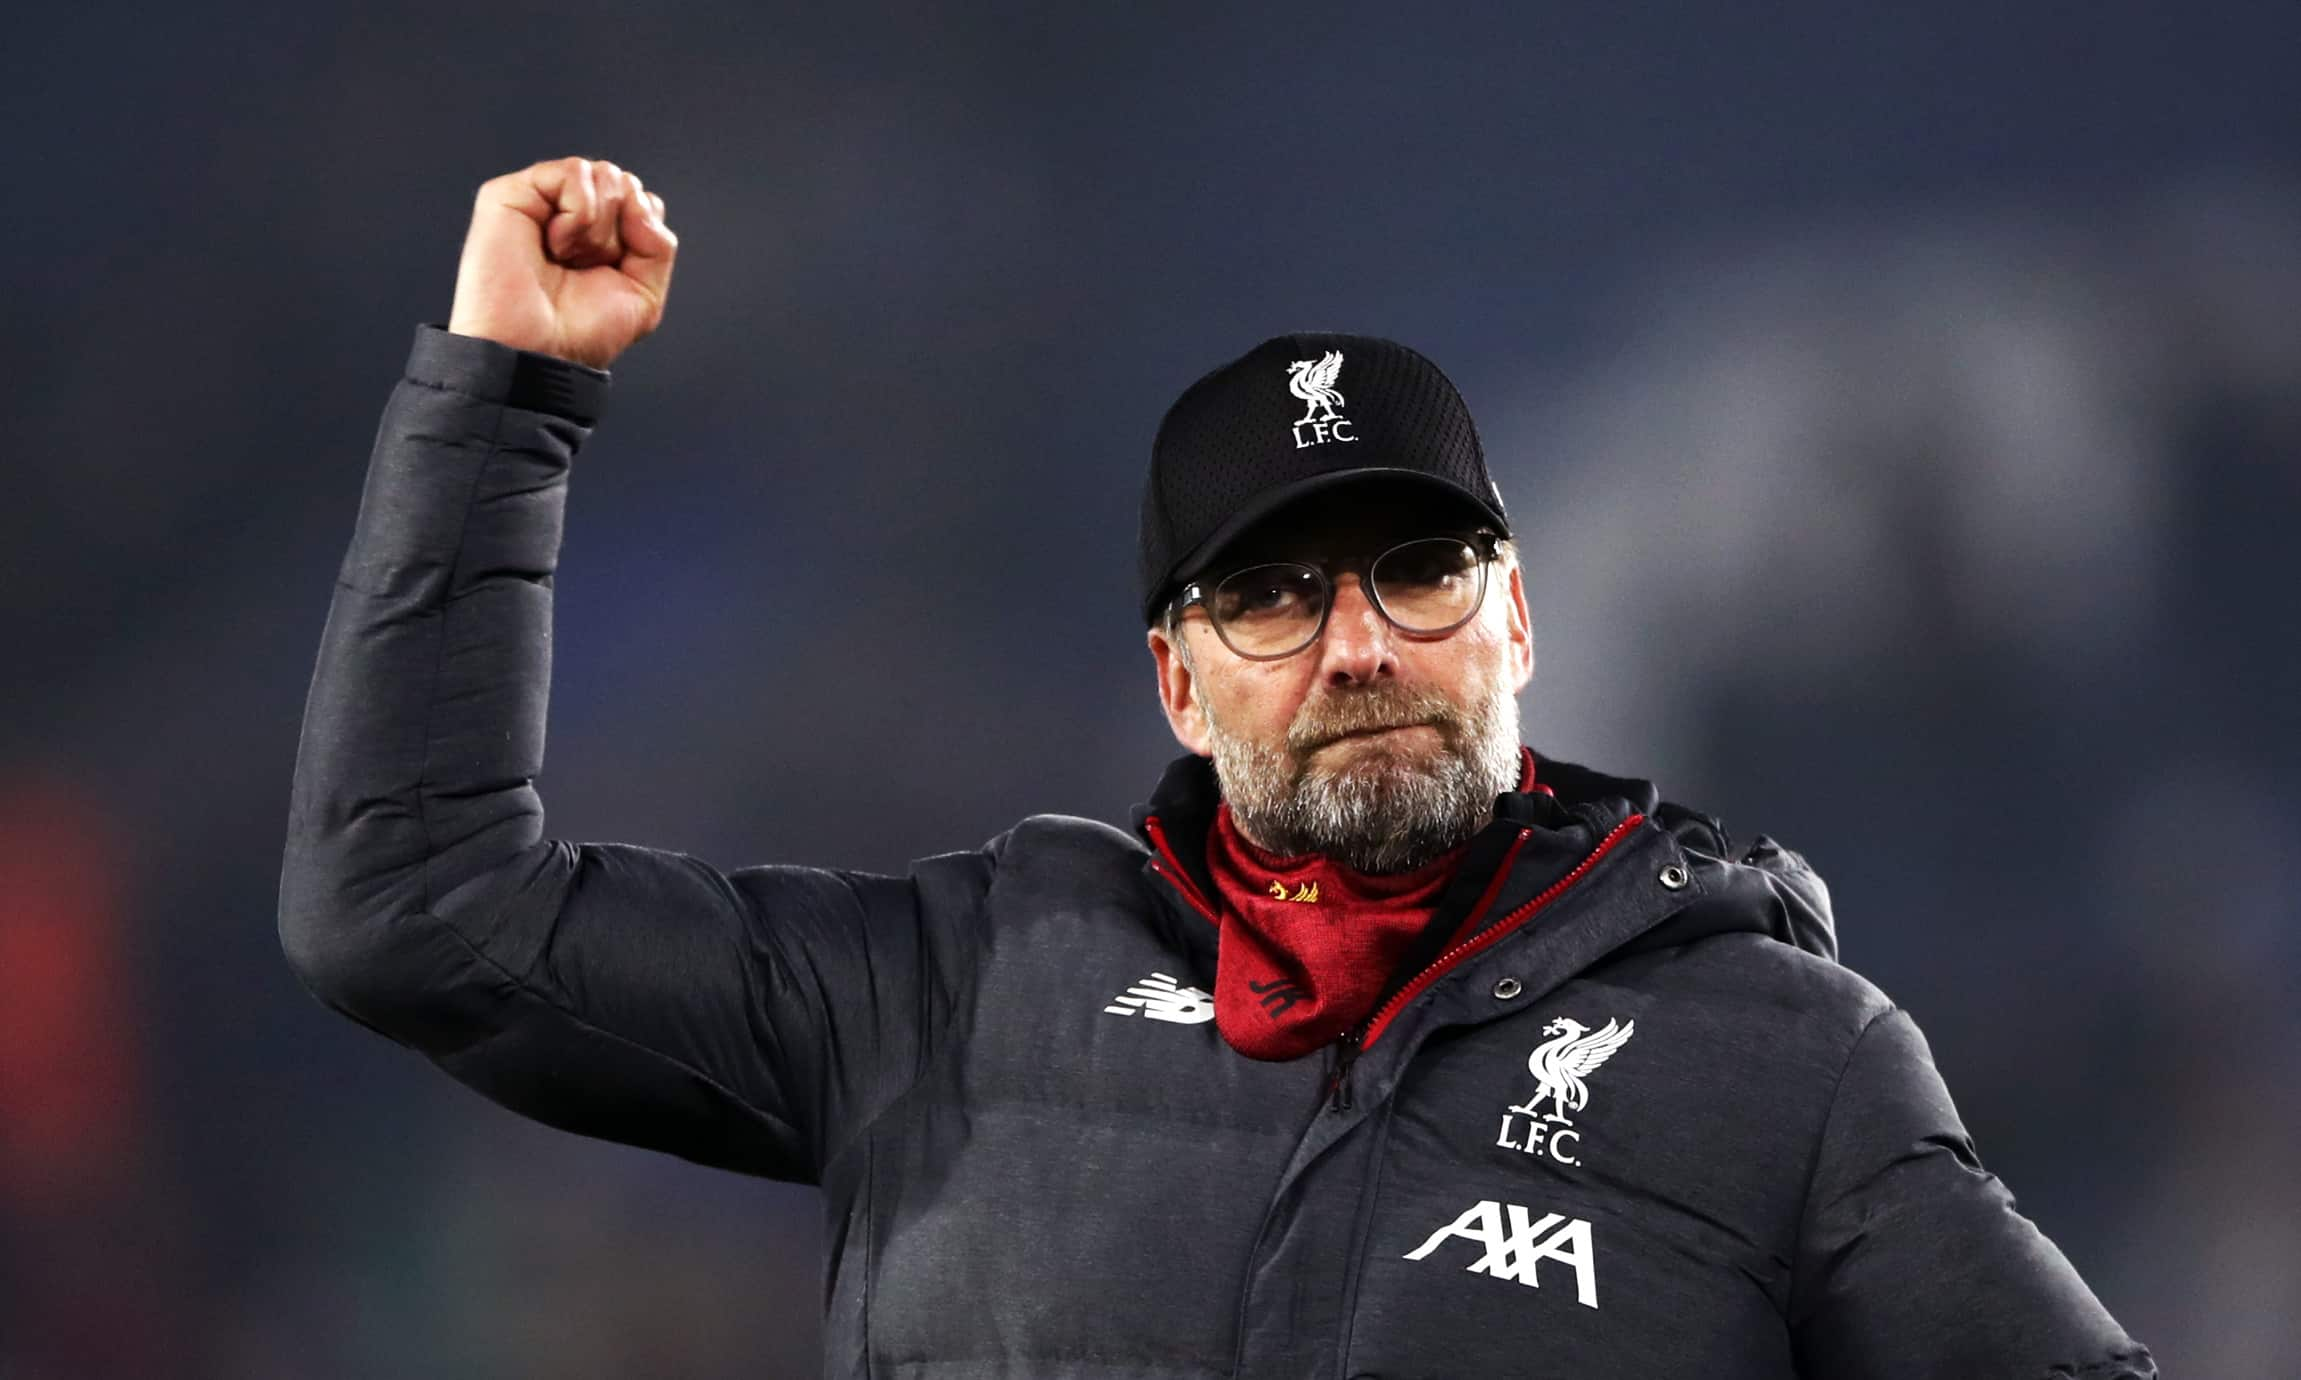 Liverpool manager Jurgen Klopp celebrates victory after the Premier League match at the King Power Stadium, Leicester. (Liverpool manager Jurgen Klopp is refusing to believe his side have one hand on the Premier League title. (Tim Goode/PA))